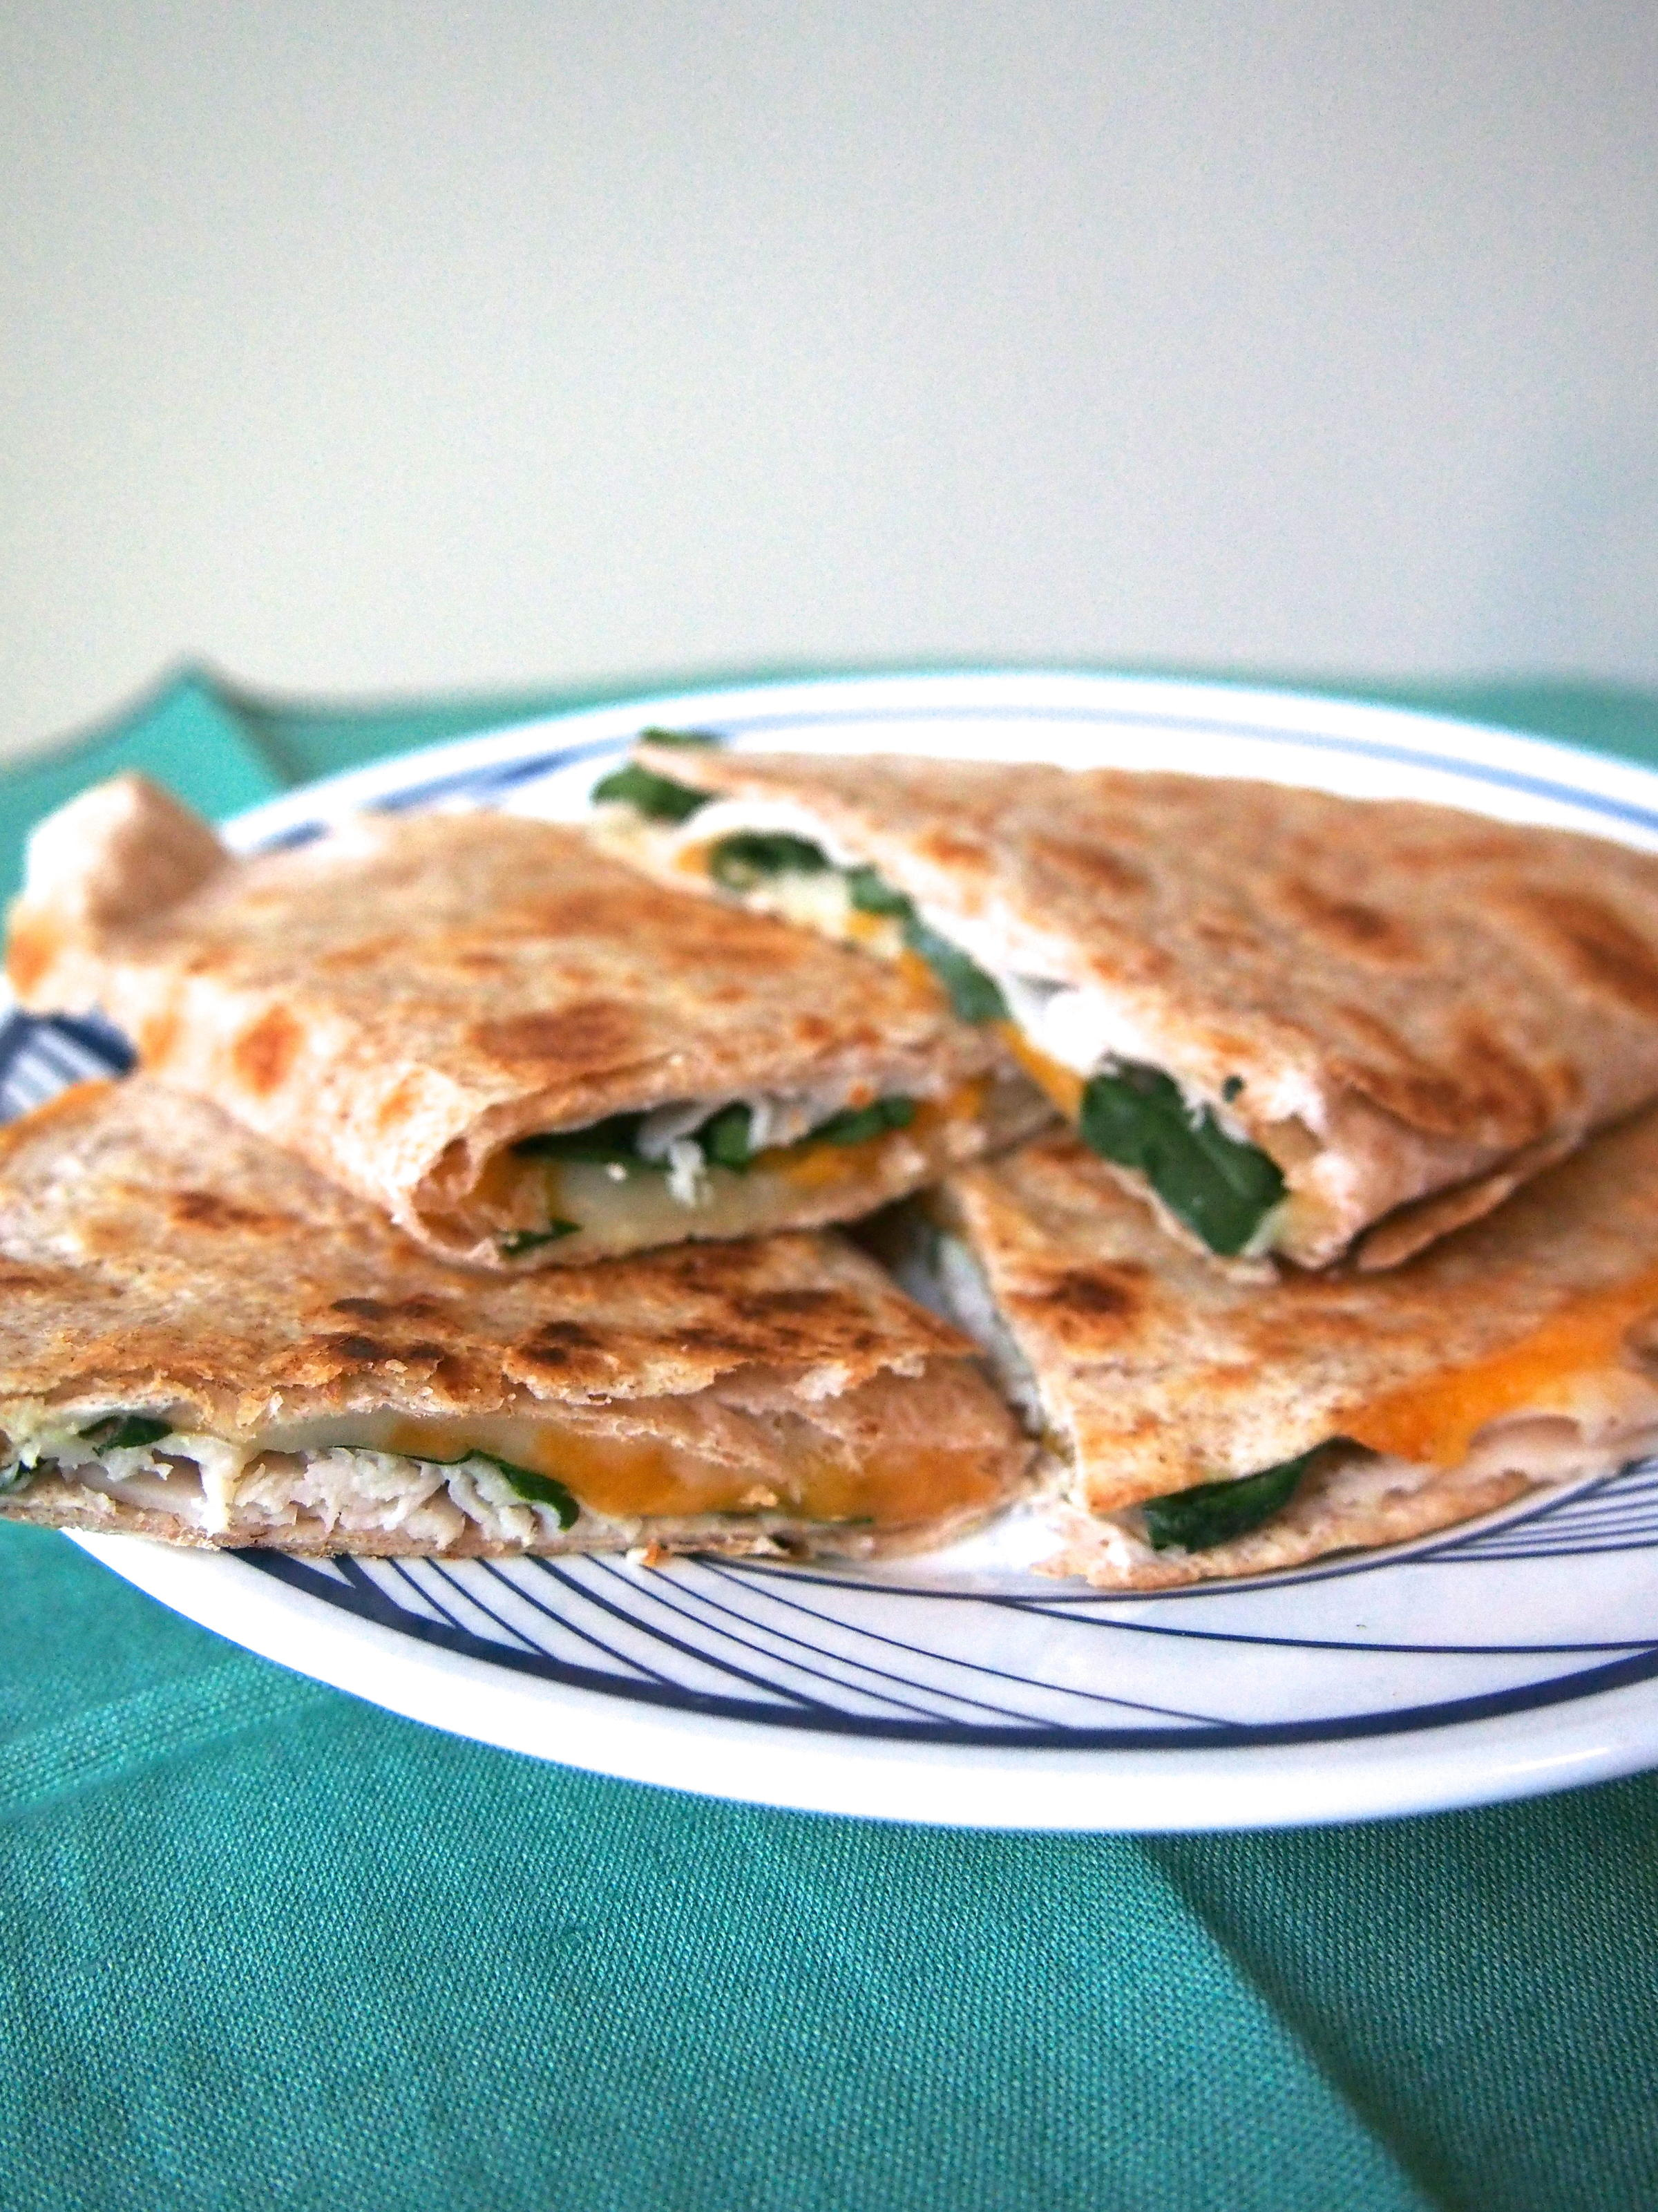 Image for Living Room Quesadillas